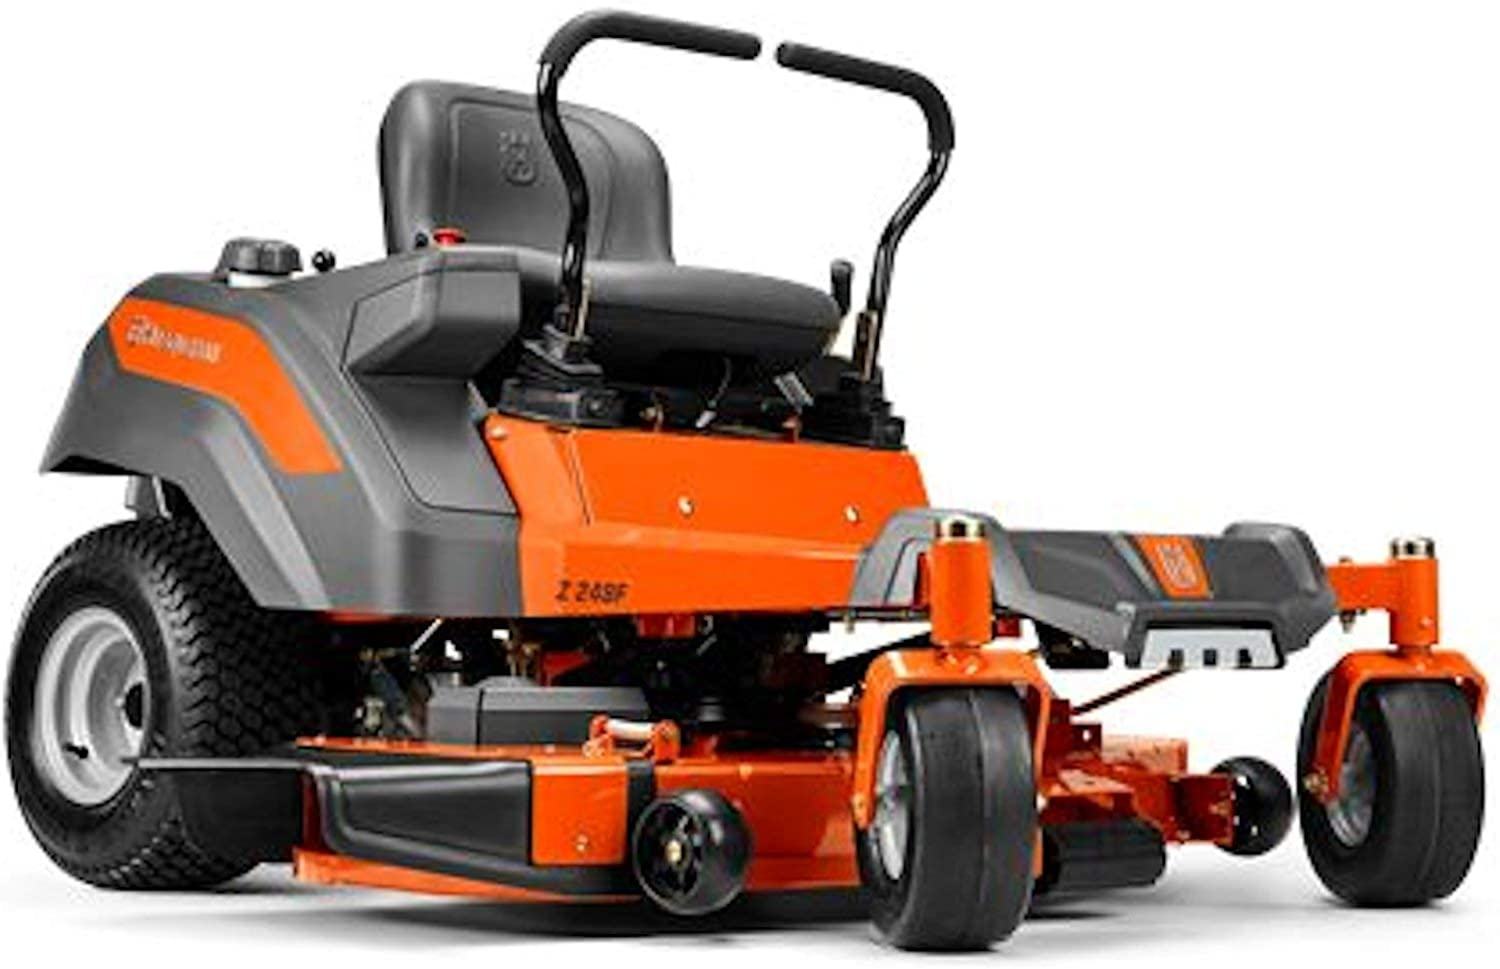 Husqvarna Z254F 54-Inch Z-Turn Mower